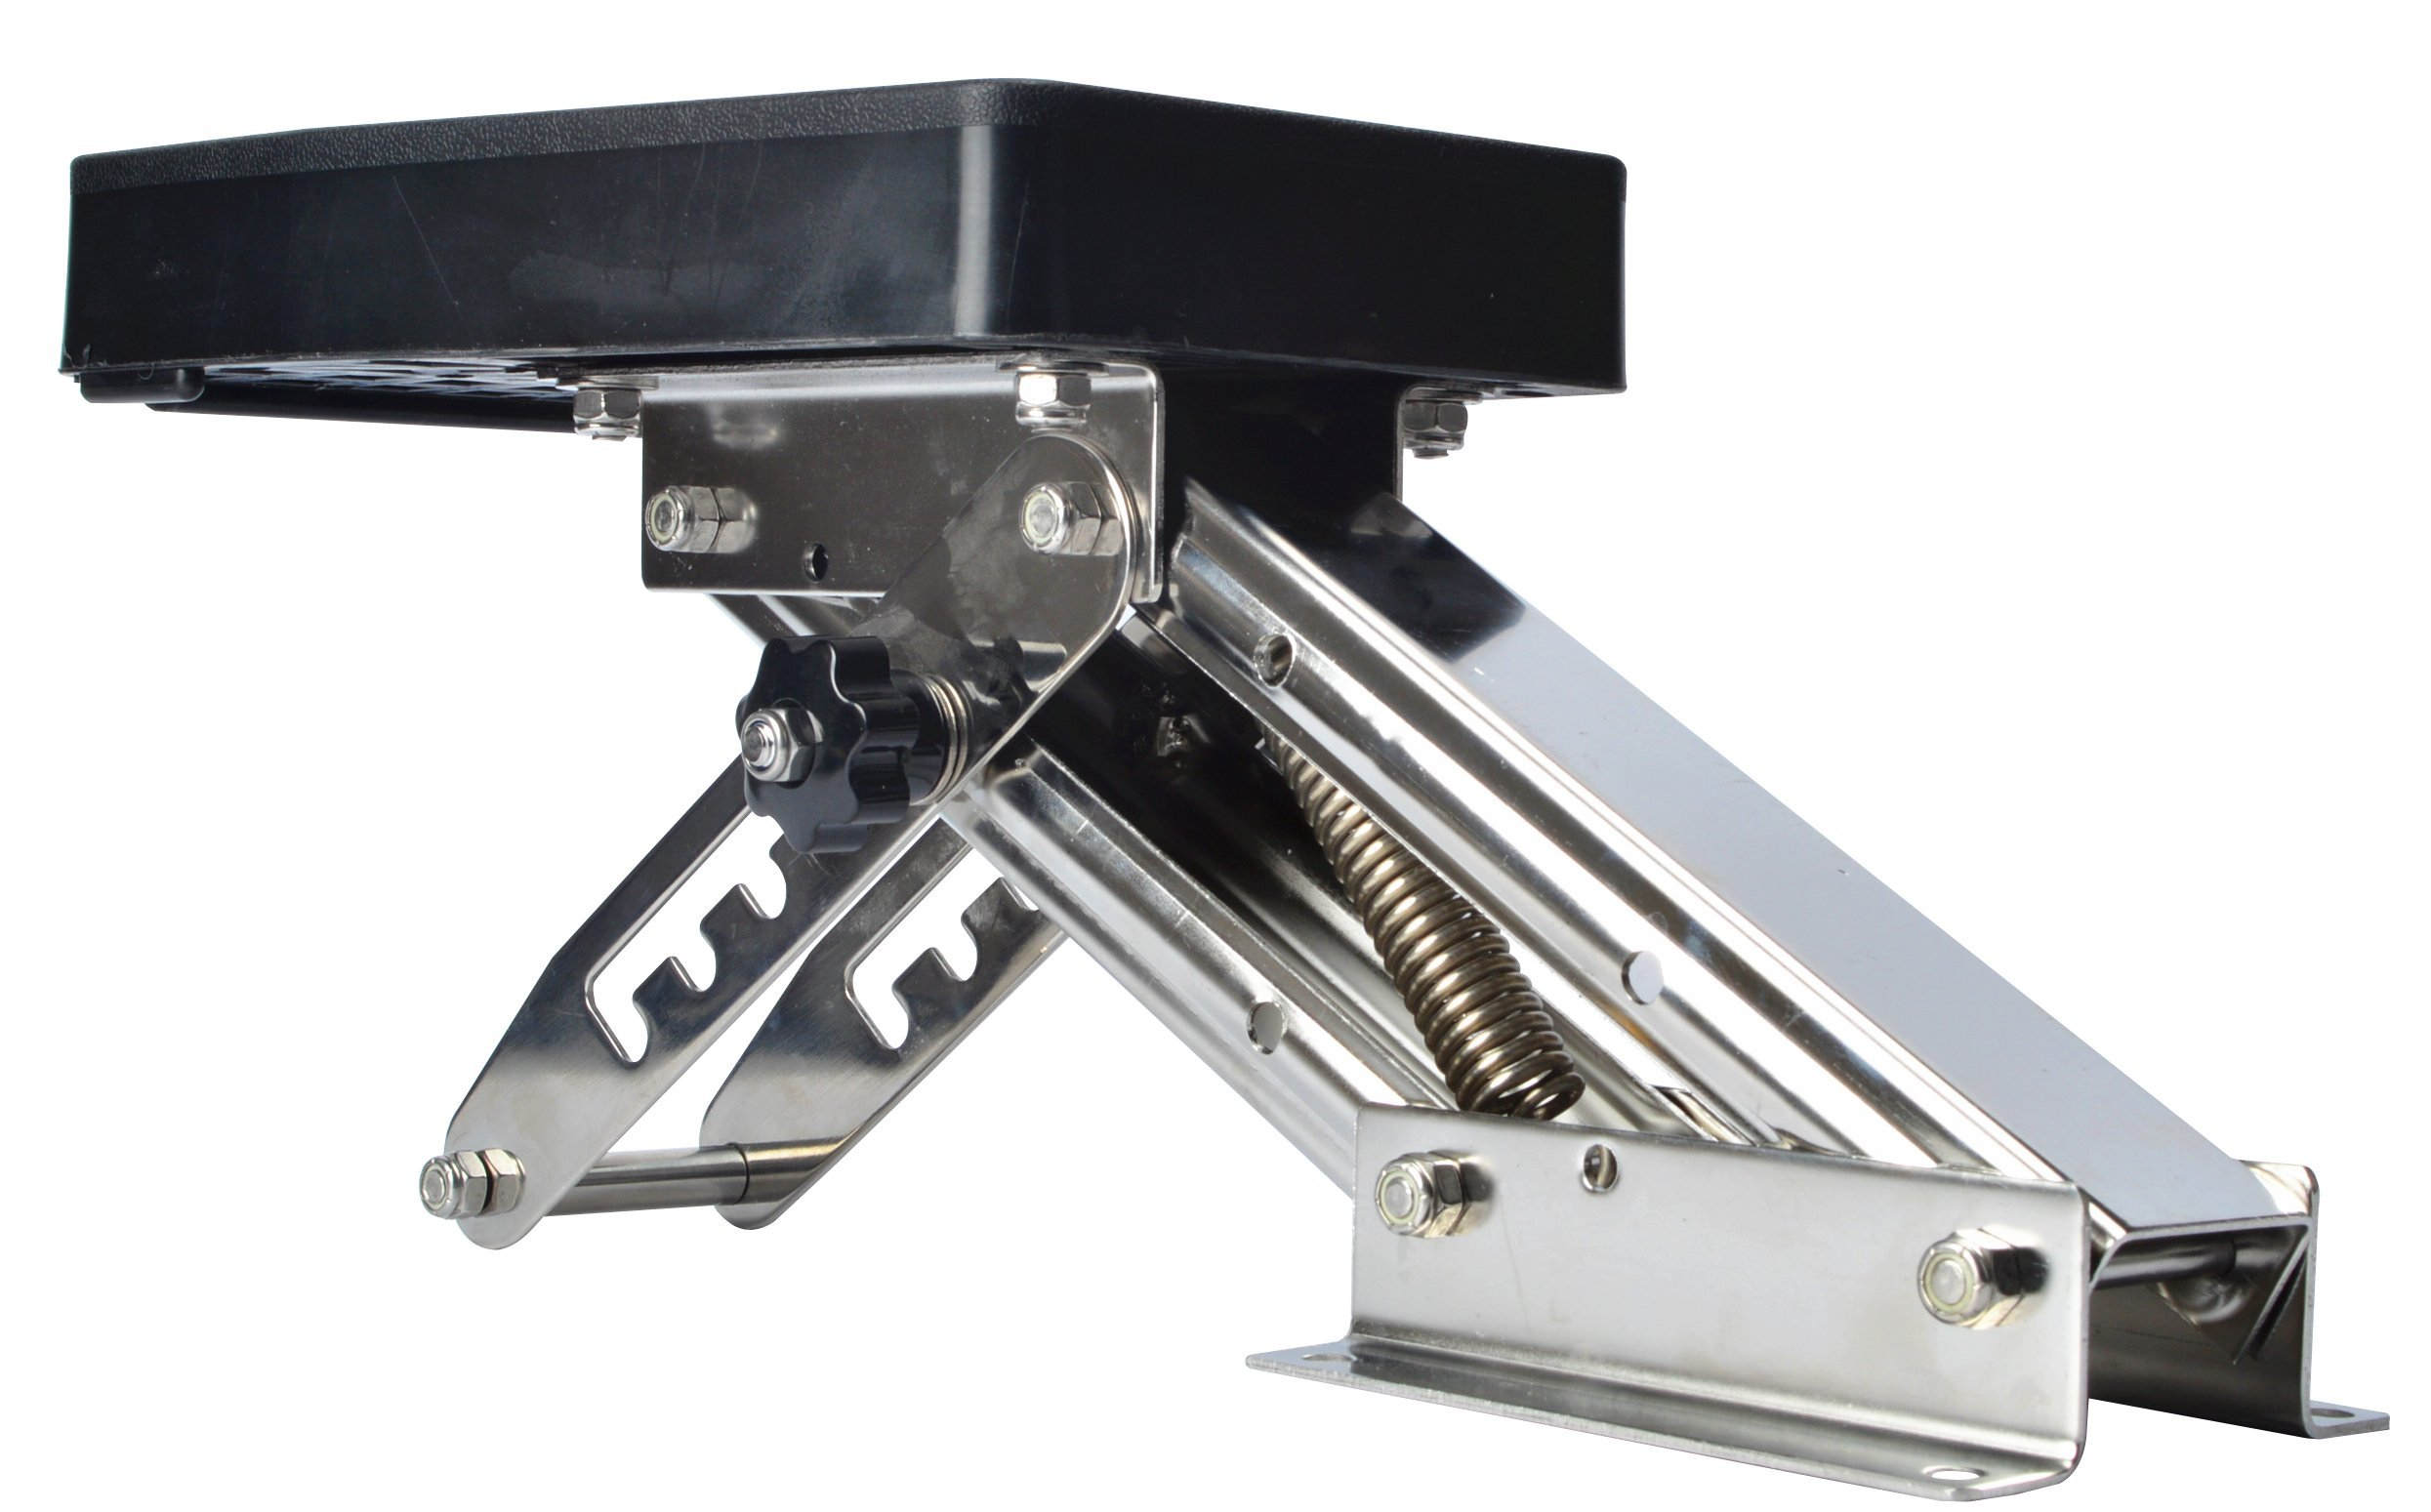 Amarine-made Outboard Motor Bracket Kicker for Boat, up to 25hp Auxilary Trolling Mount